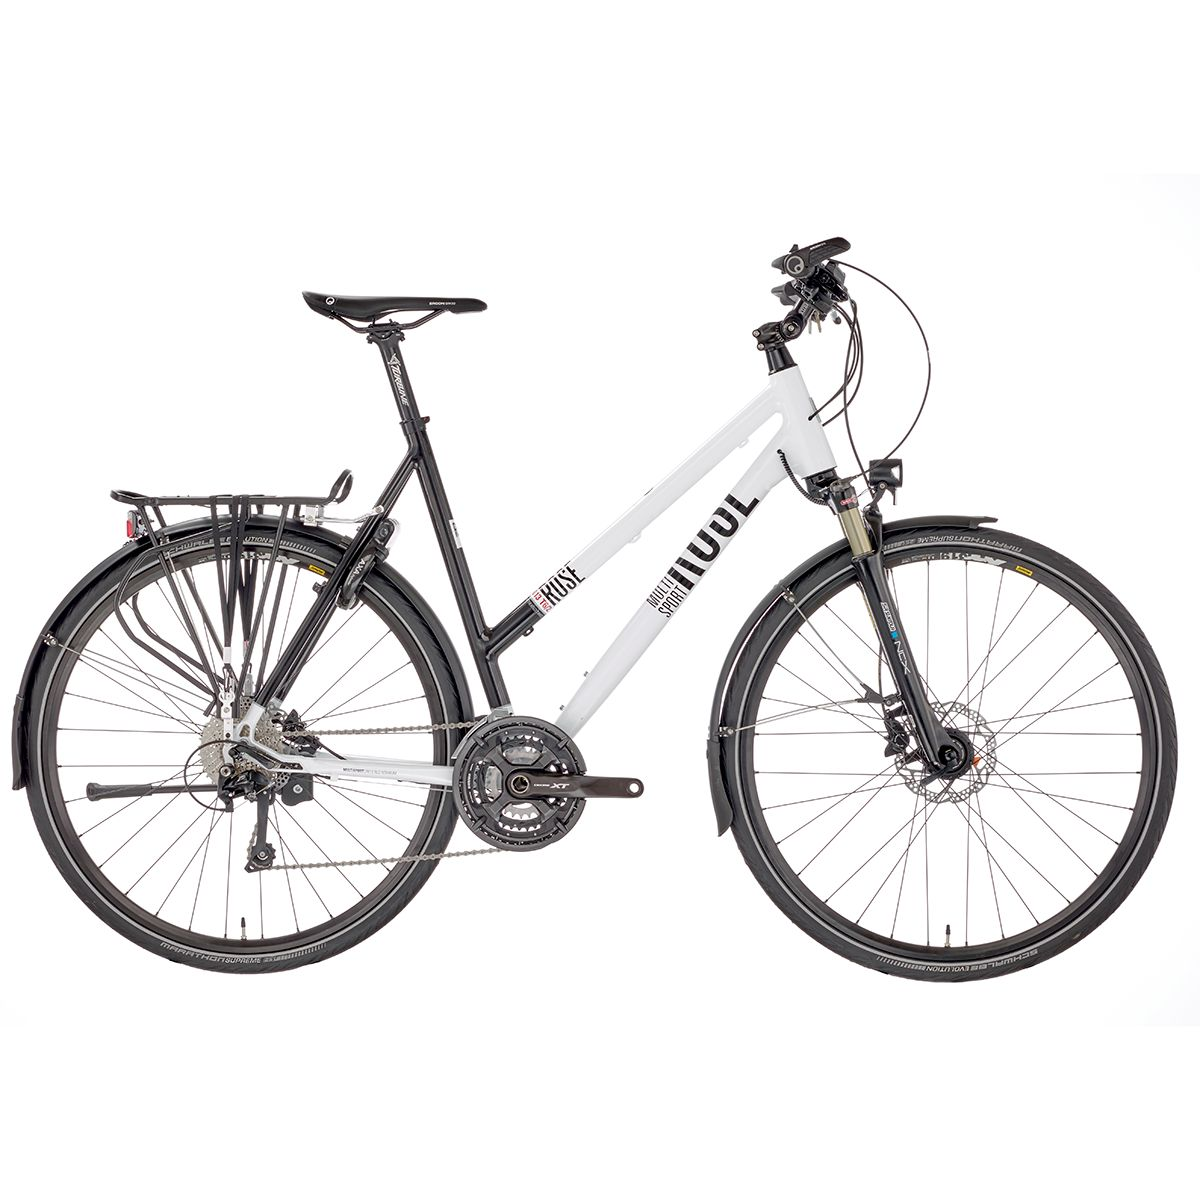 TREKKING 17 MULTISPORT 3 LADIES showroom bike